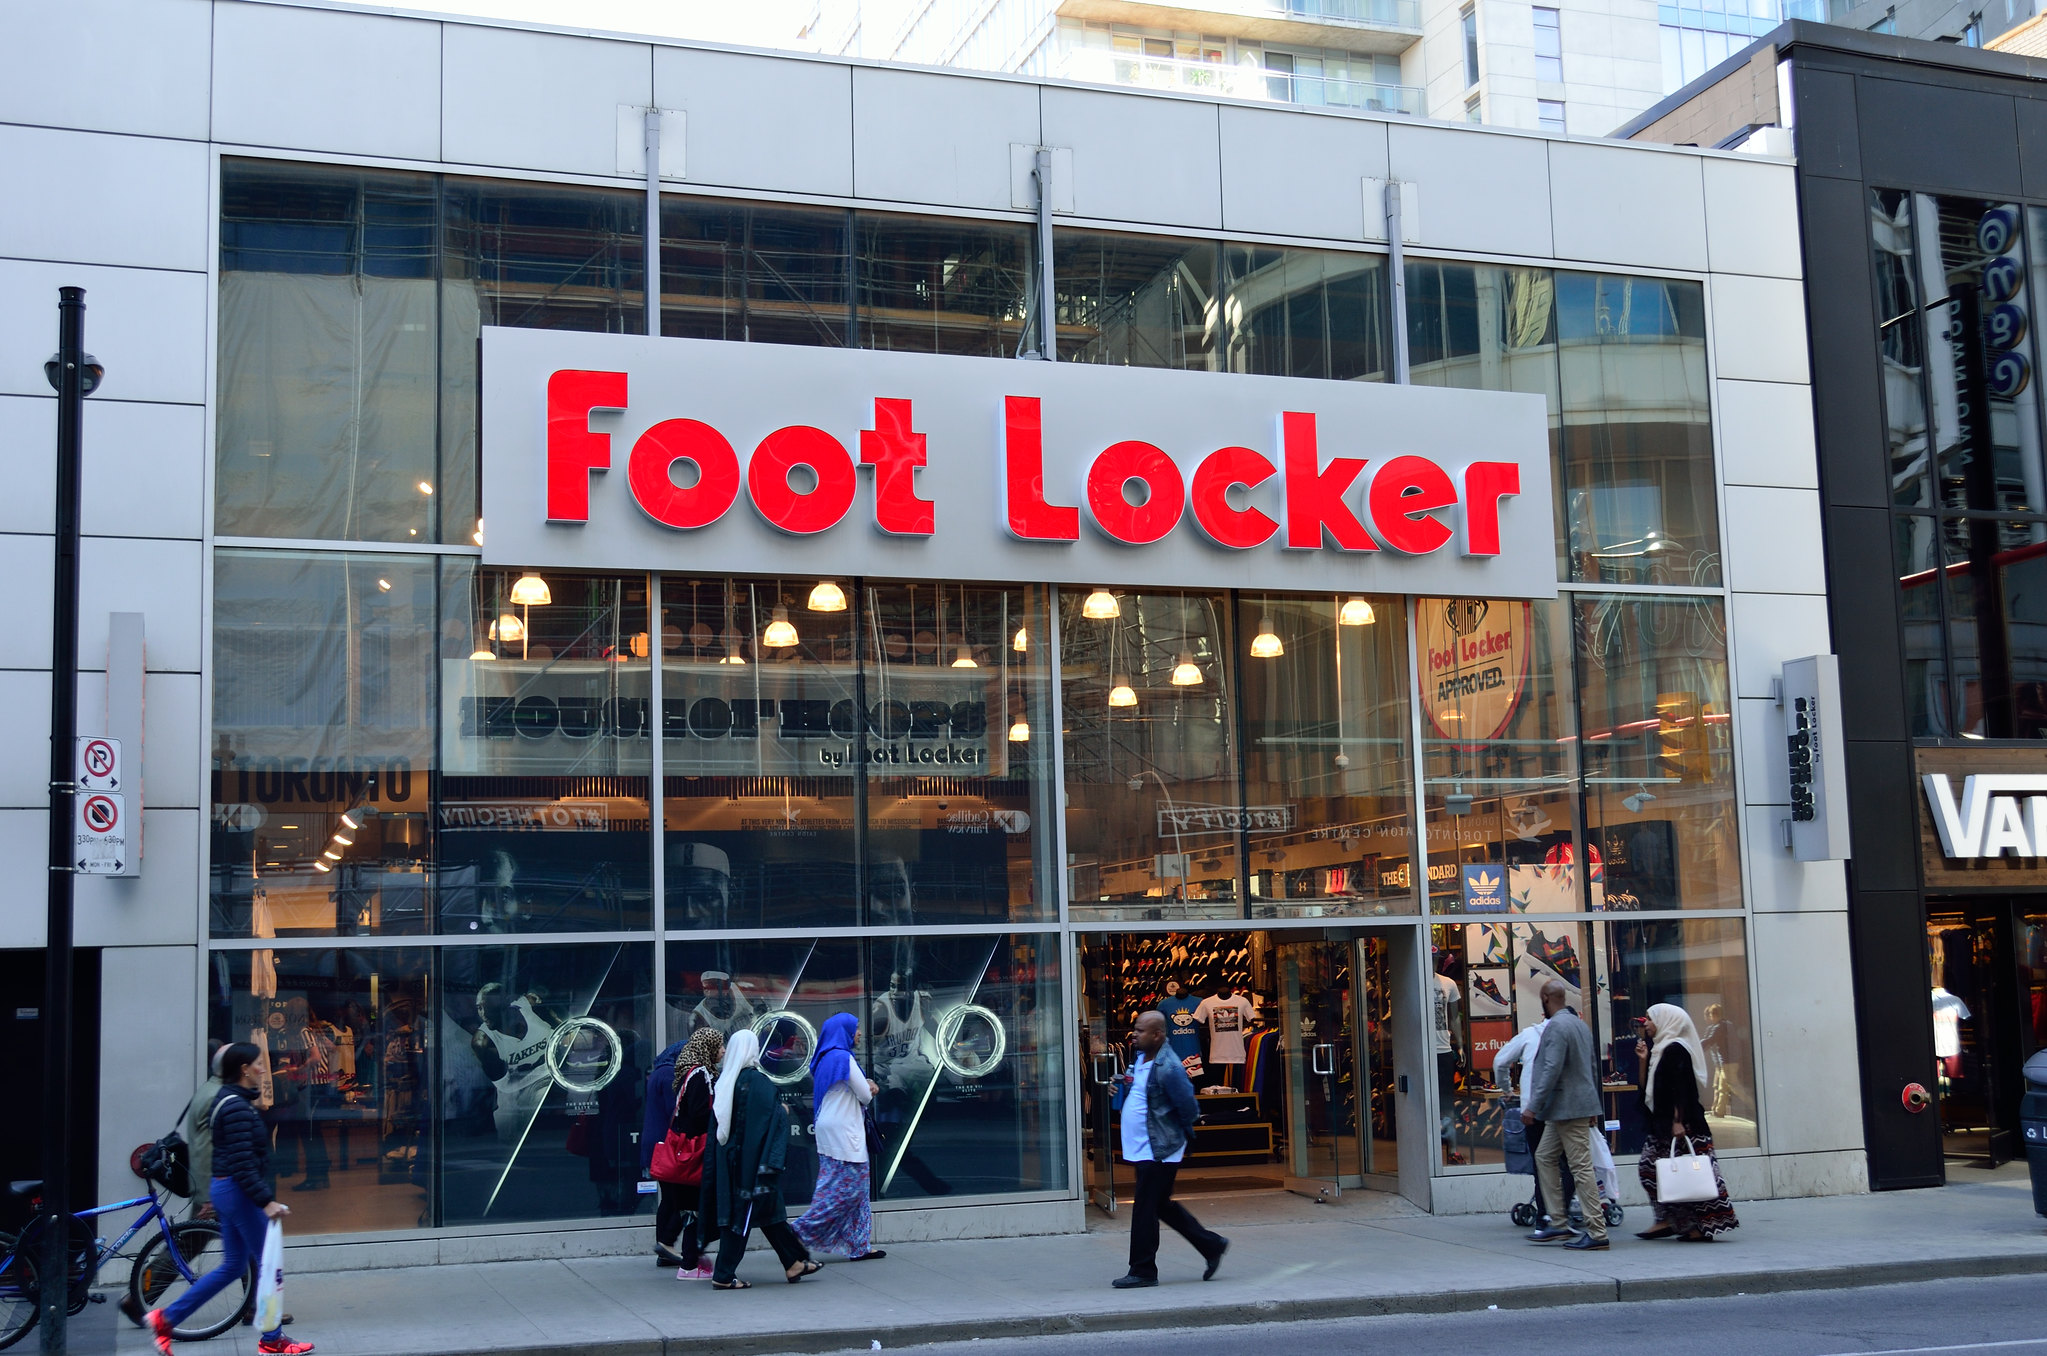 Foot Locker Transforms 2,000 US Stores Into Voter Registration Sites to Boost Youth Turnout